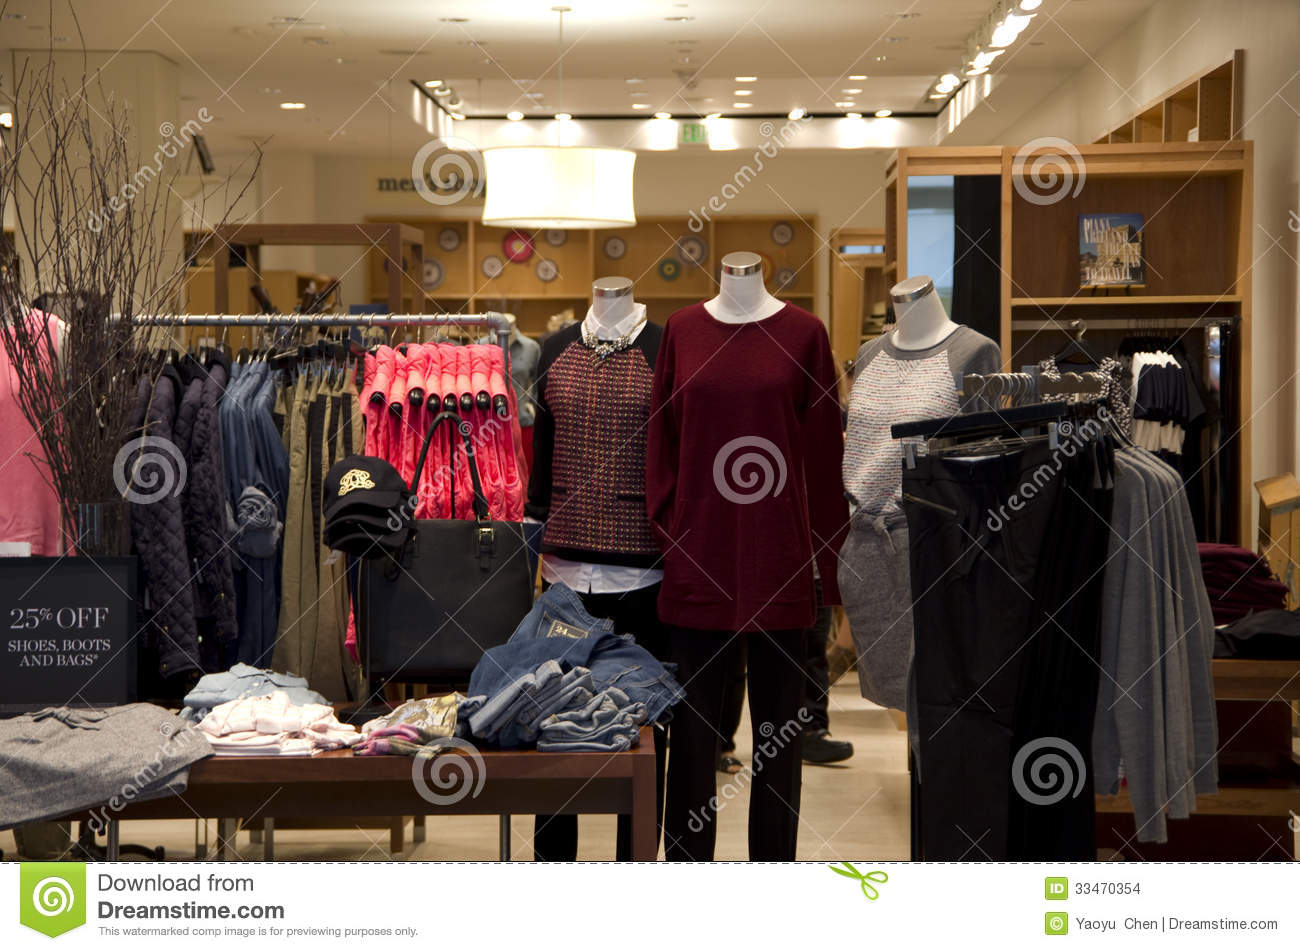 Clothing stores near me